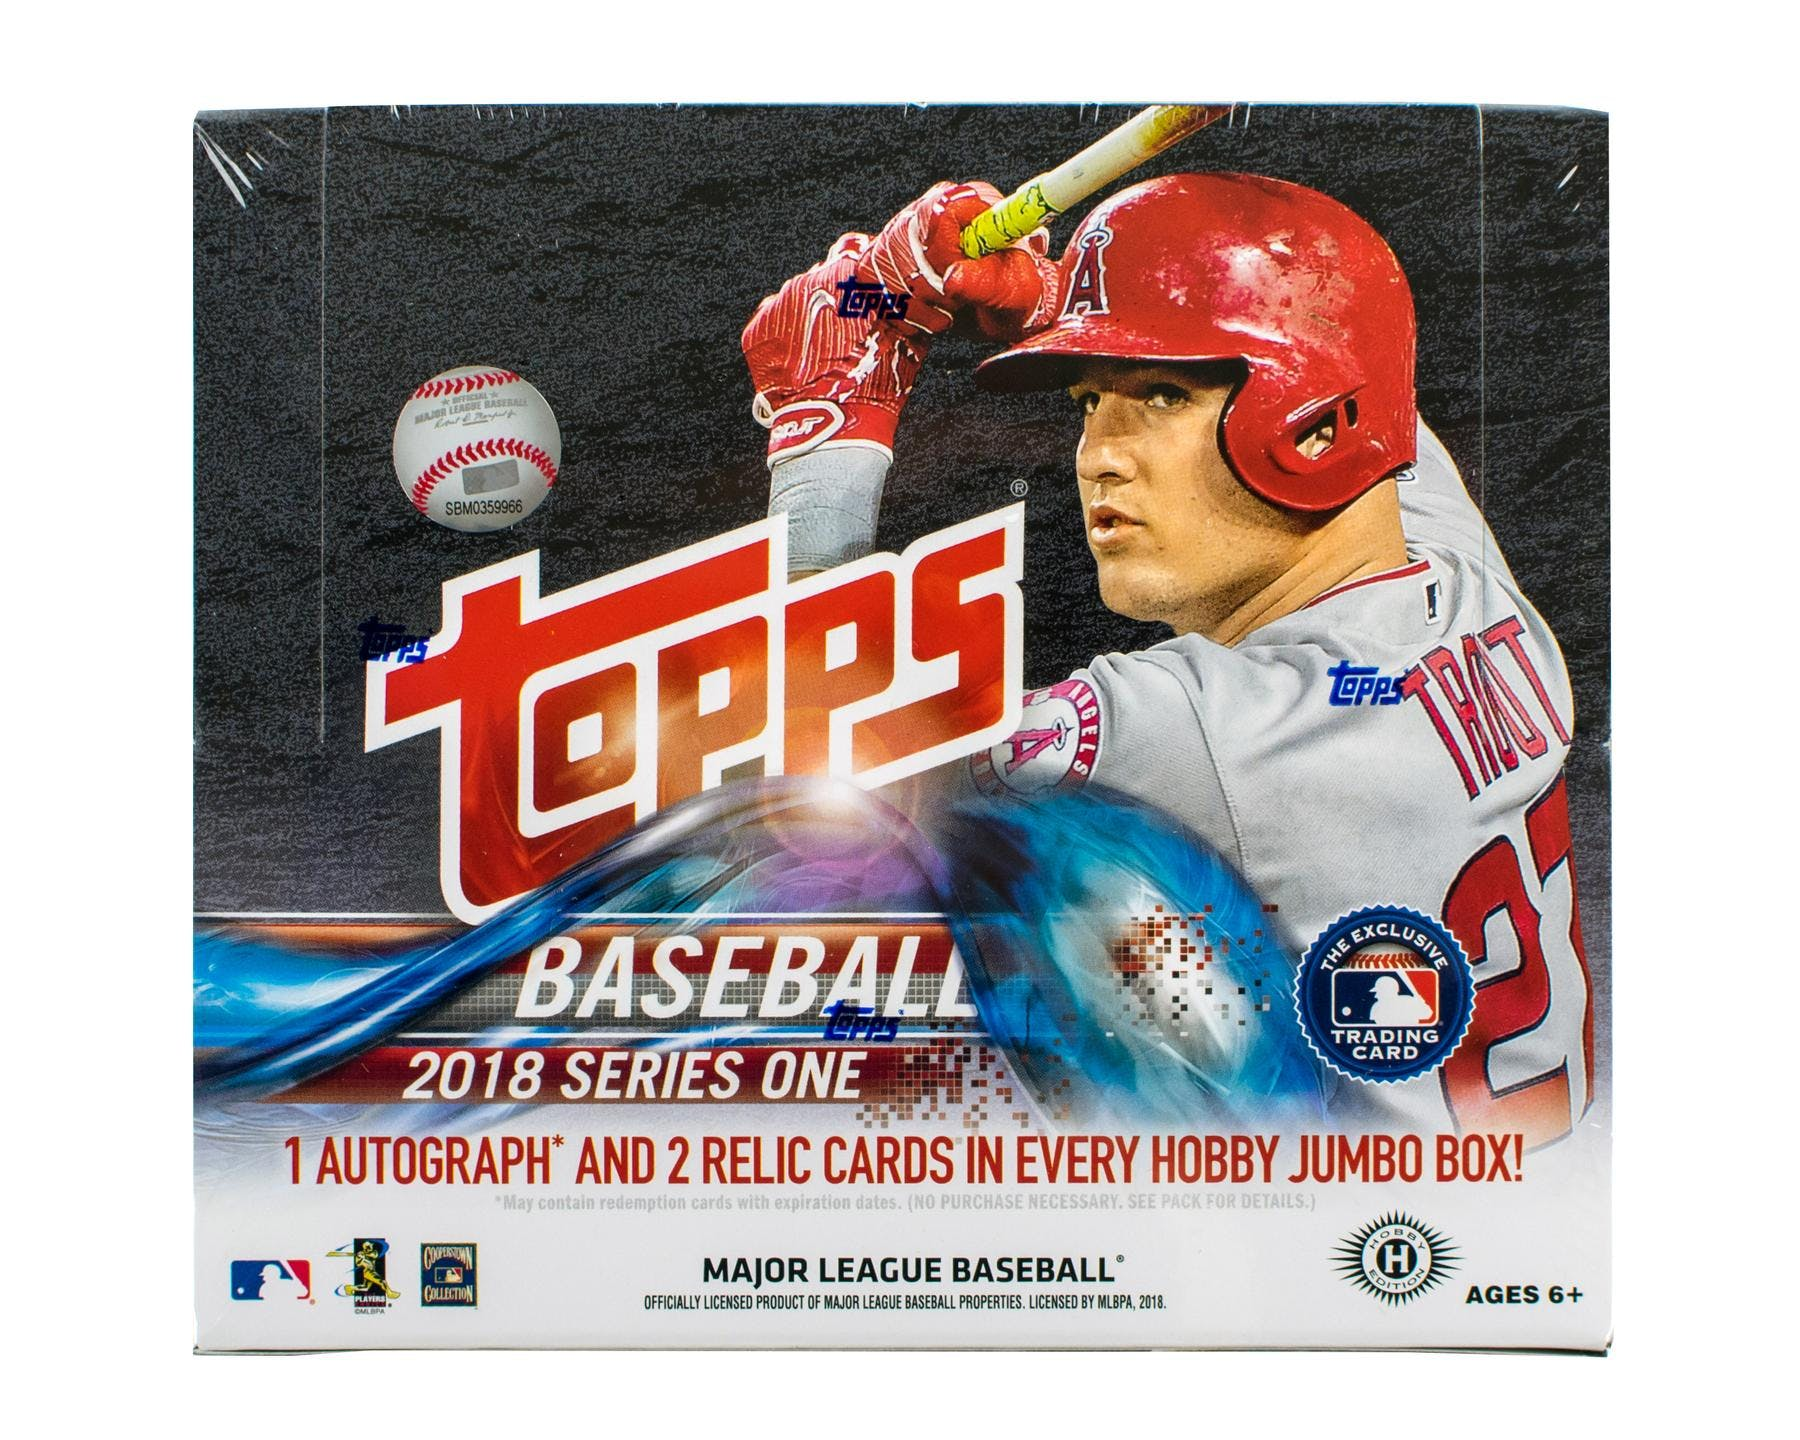 8cfffeb9114 2018 Topps Series 1 Baseball Hobby Jumbo Box | DA Card World